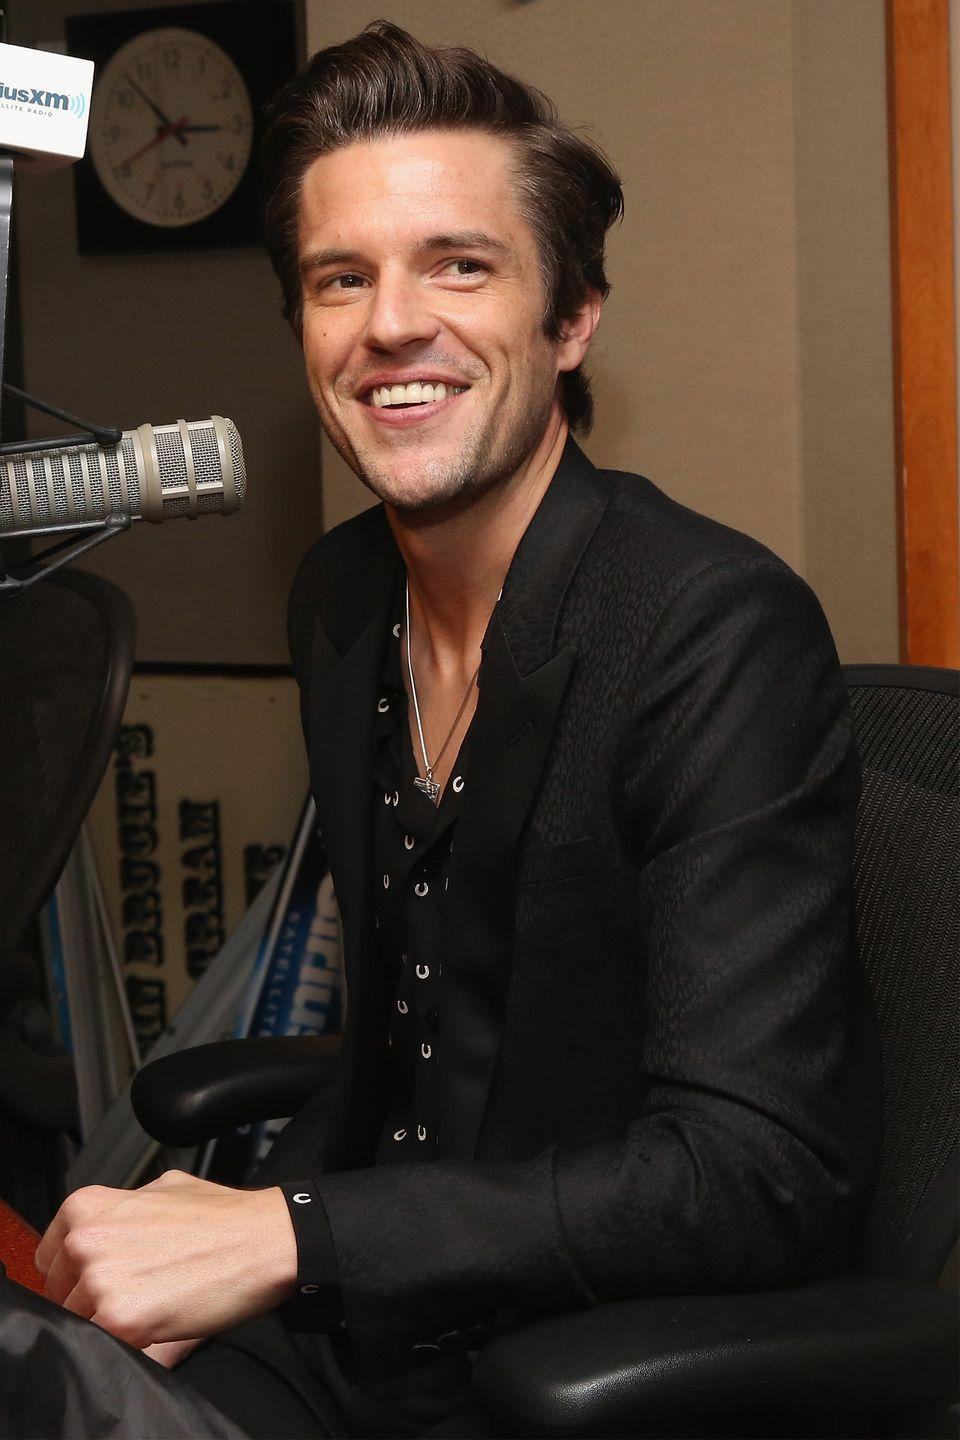 """<p>Lead singer of The Killers, Brandon Flowers, revealed that engaging in alcohol use during the early years of the band's success truly helped him to decide which path he wanted to follow when he became a father. Flowers has now been embracing the sober life for much of the later half of his career. </p><p>H/T: <a href=""""http://www.npr.org/2015/05/26/409671982/desired-effect-reveals-how-important-family-is-to-rocker-brandon-flowers"""" rel=""""nofollow noopener"""" target=""""_blank"""" data-ylk=""""slk:NPR"""" class=""""link rapid-noclick-resp"""">NPR</a></p>"""